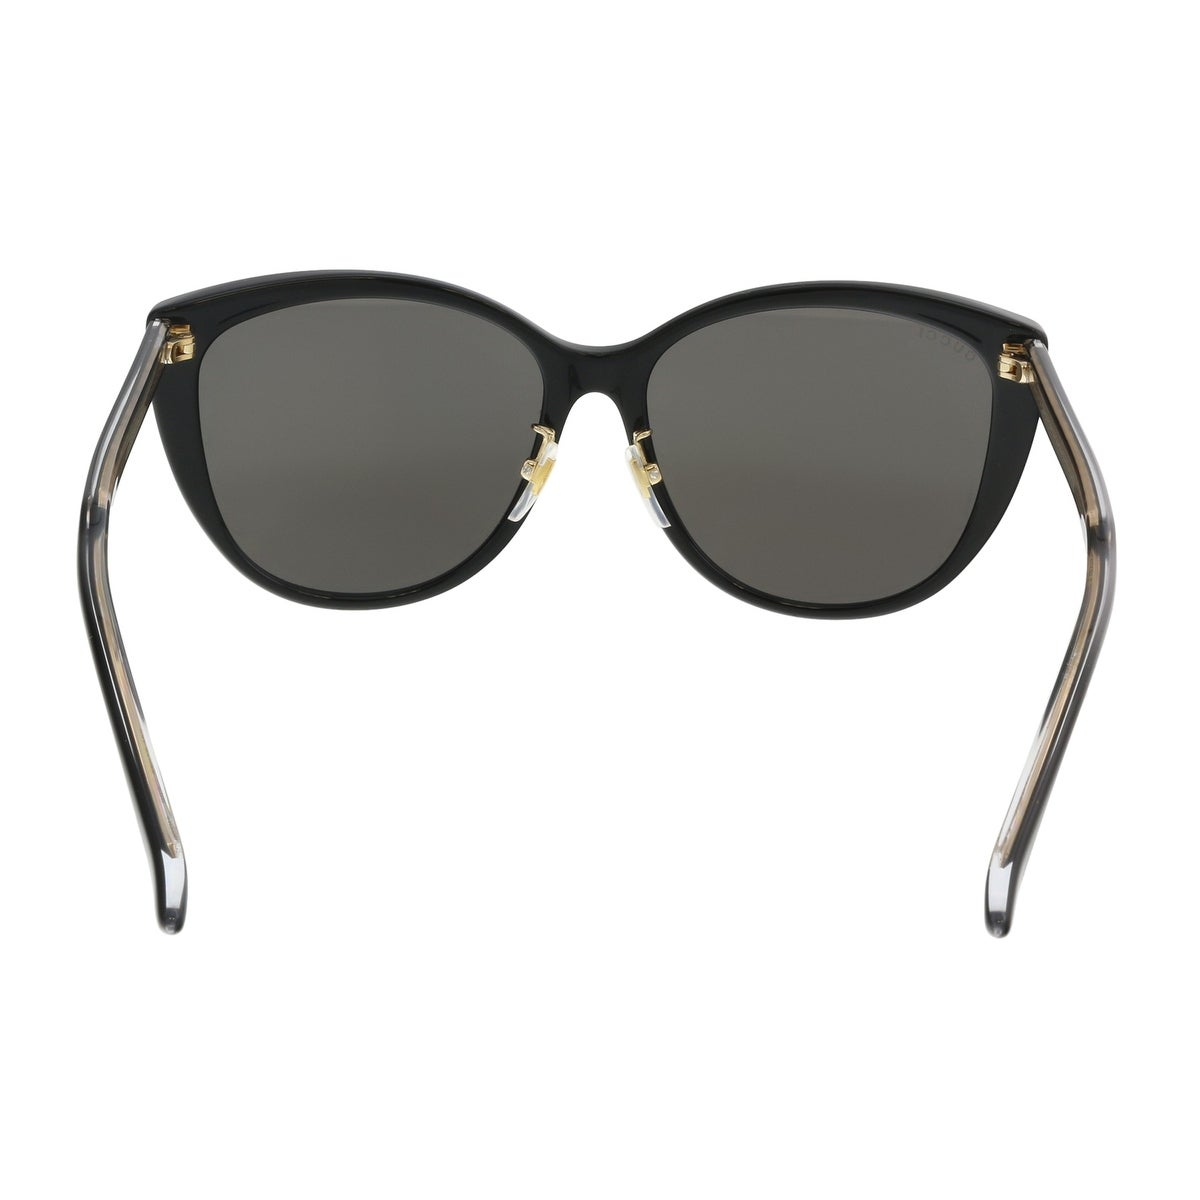 76f150197aa Shop Gucci GG0193SK-003 Black Cat Eye Sunglasses - 58-16-150 - Free  Shipping Today - Overstock - 19490340